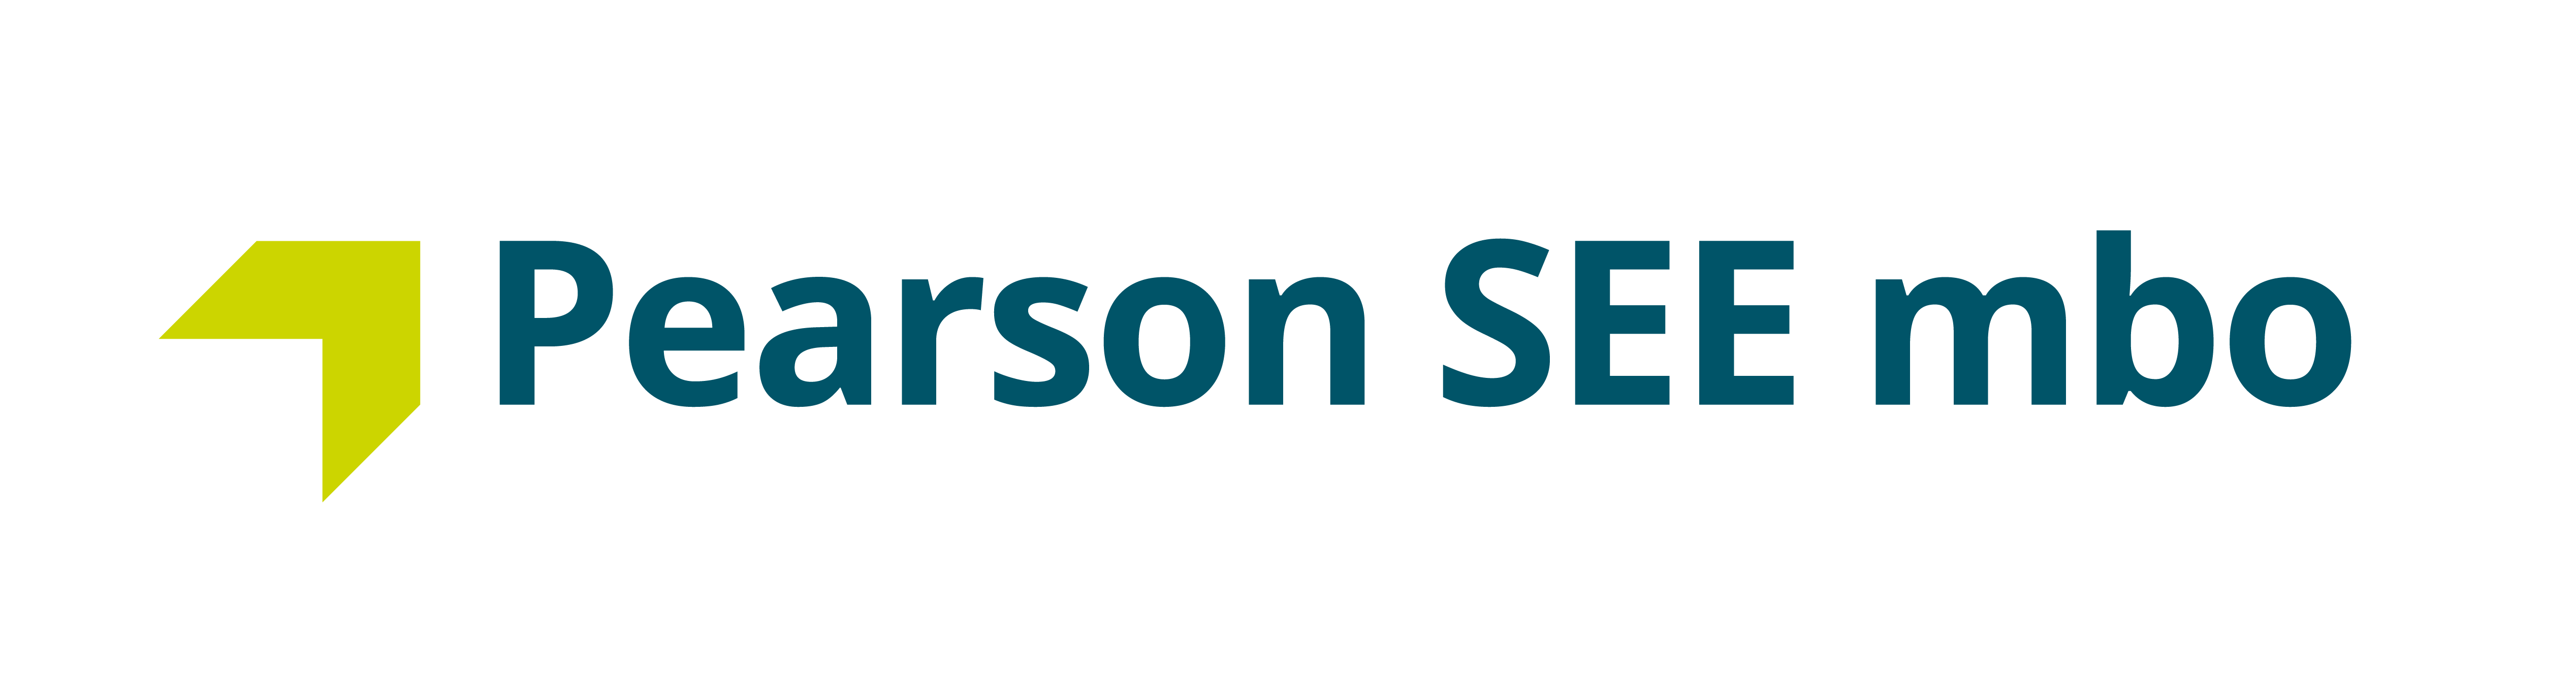 Pearson SEE mbo